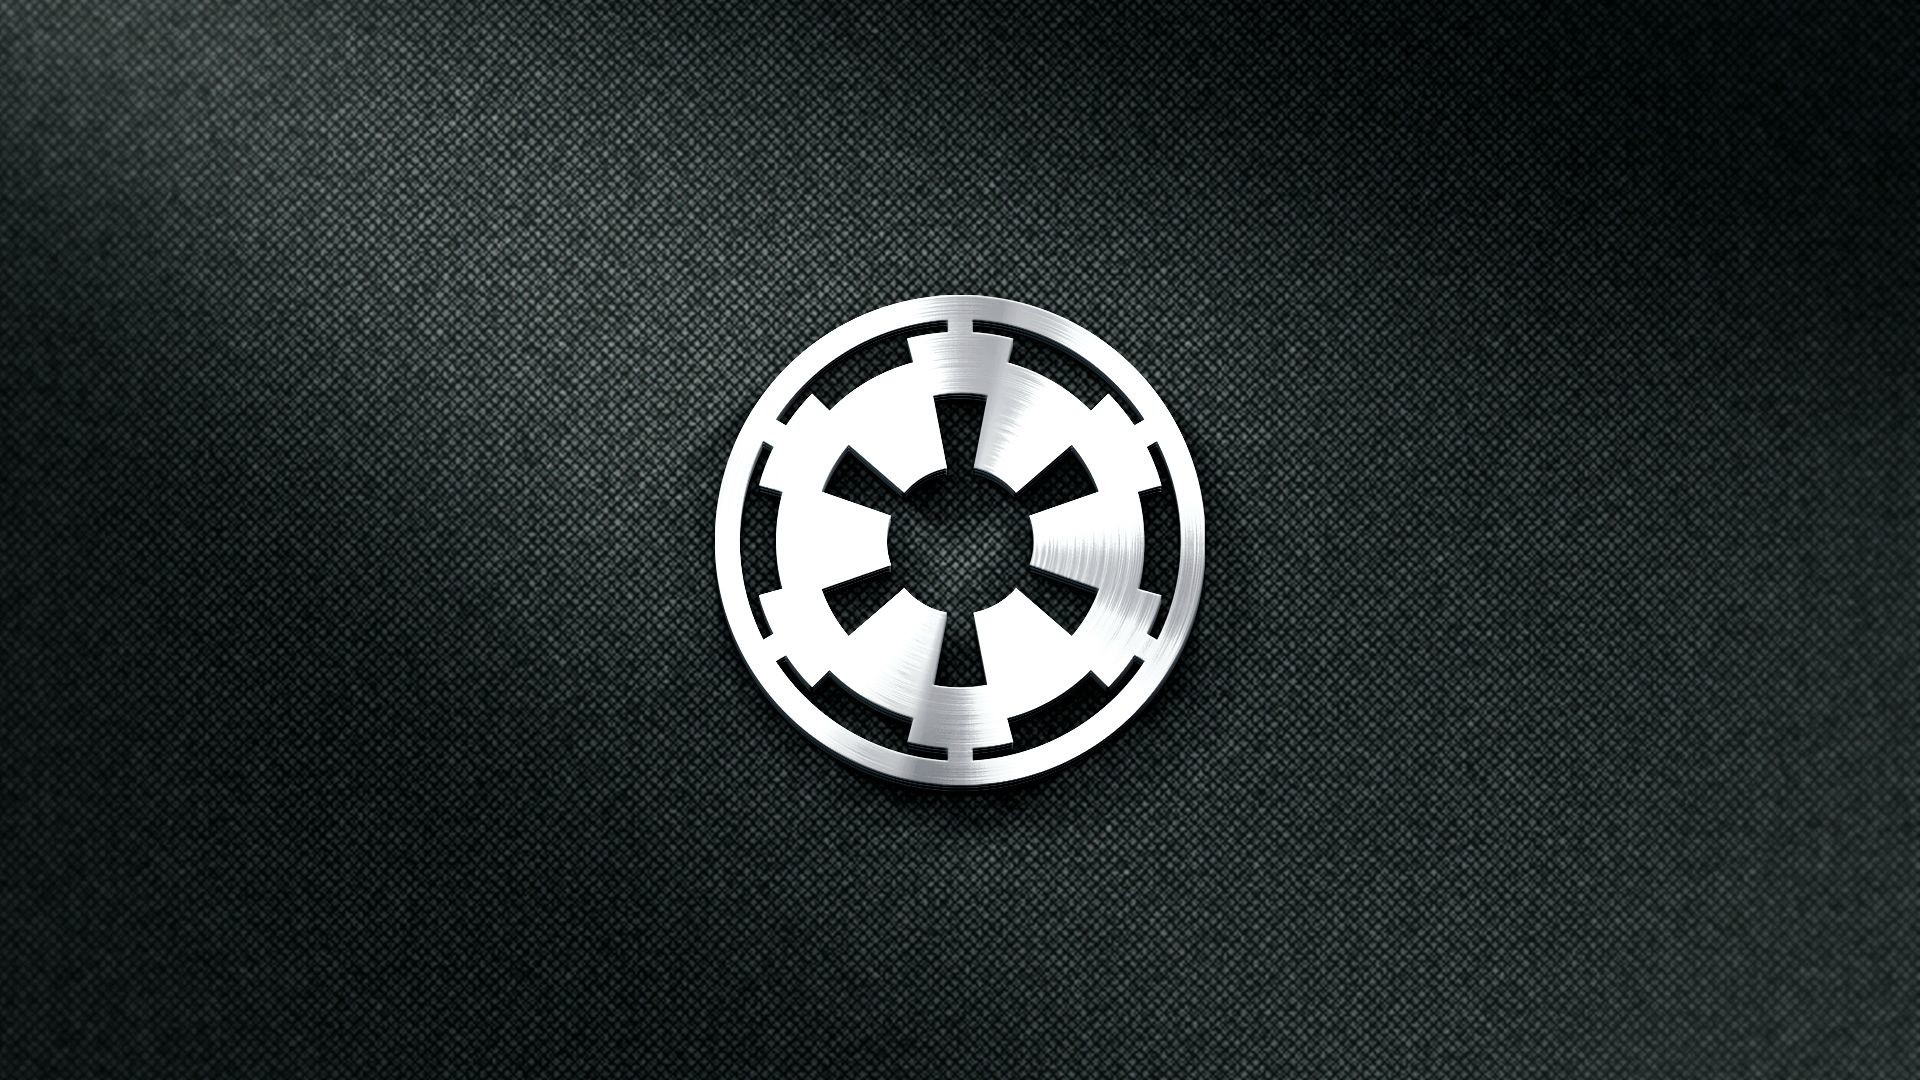 1920x1080 Made another wallpaper for you Imperials out there.